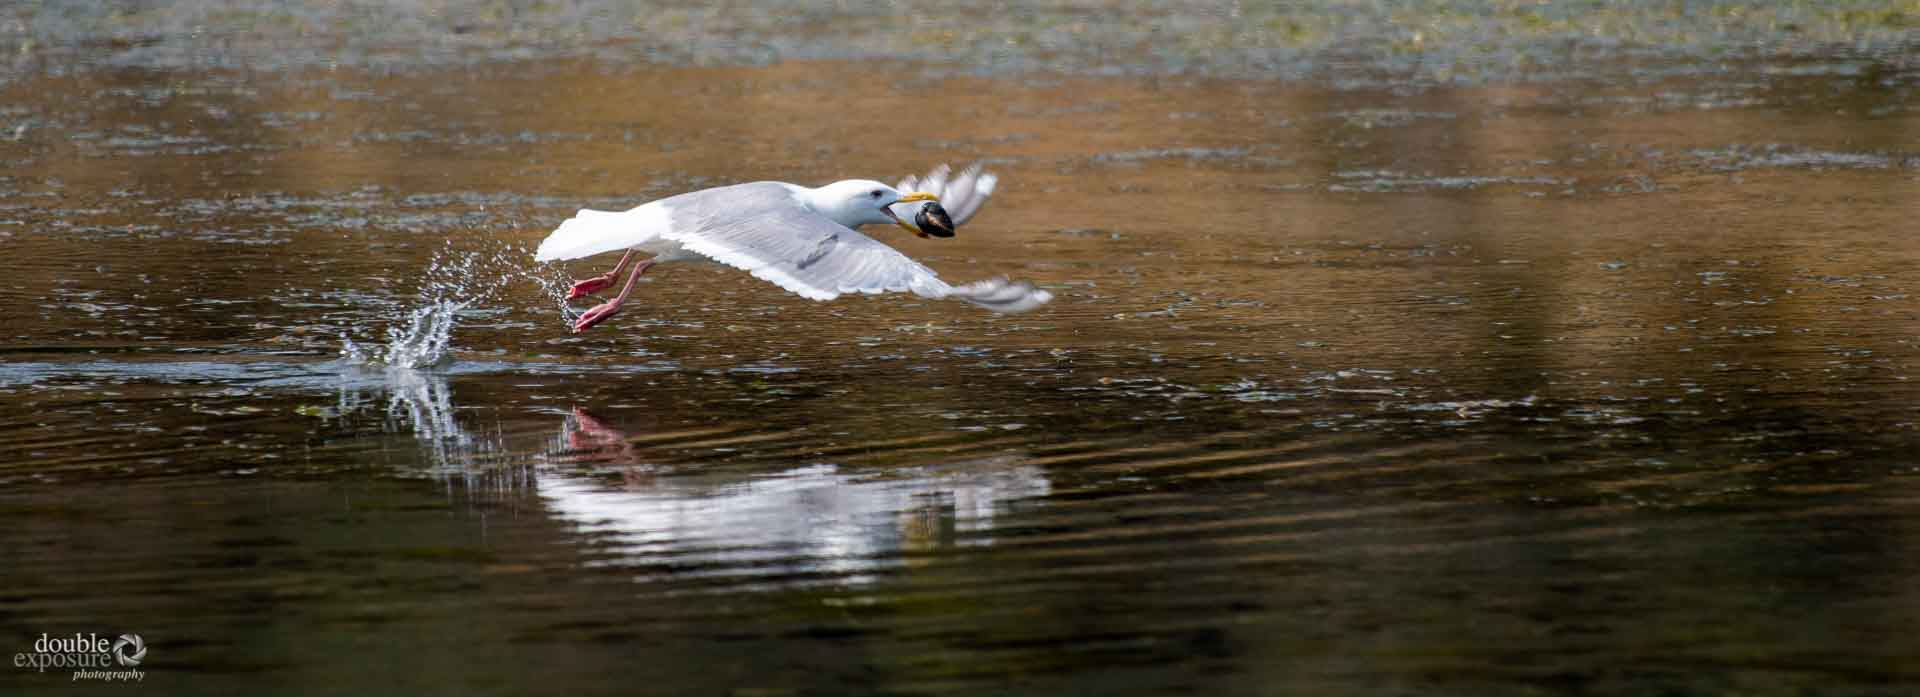 a seagull in flight with a clam shell in its mouth.